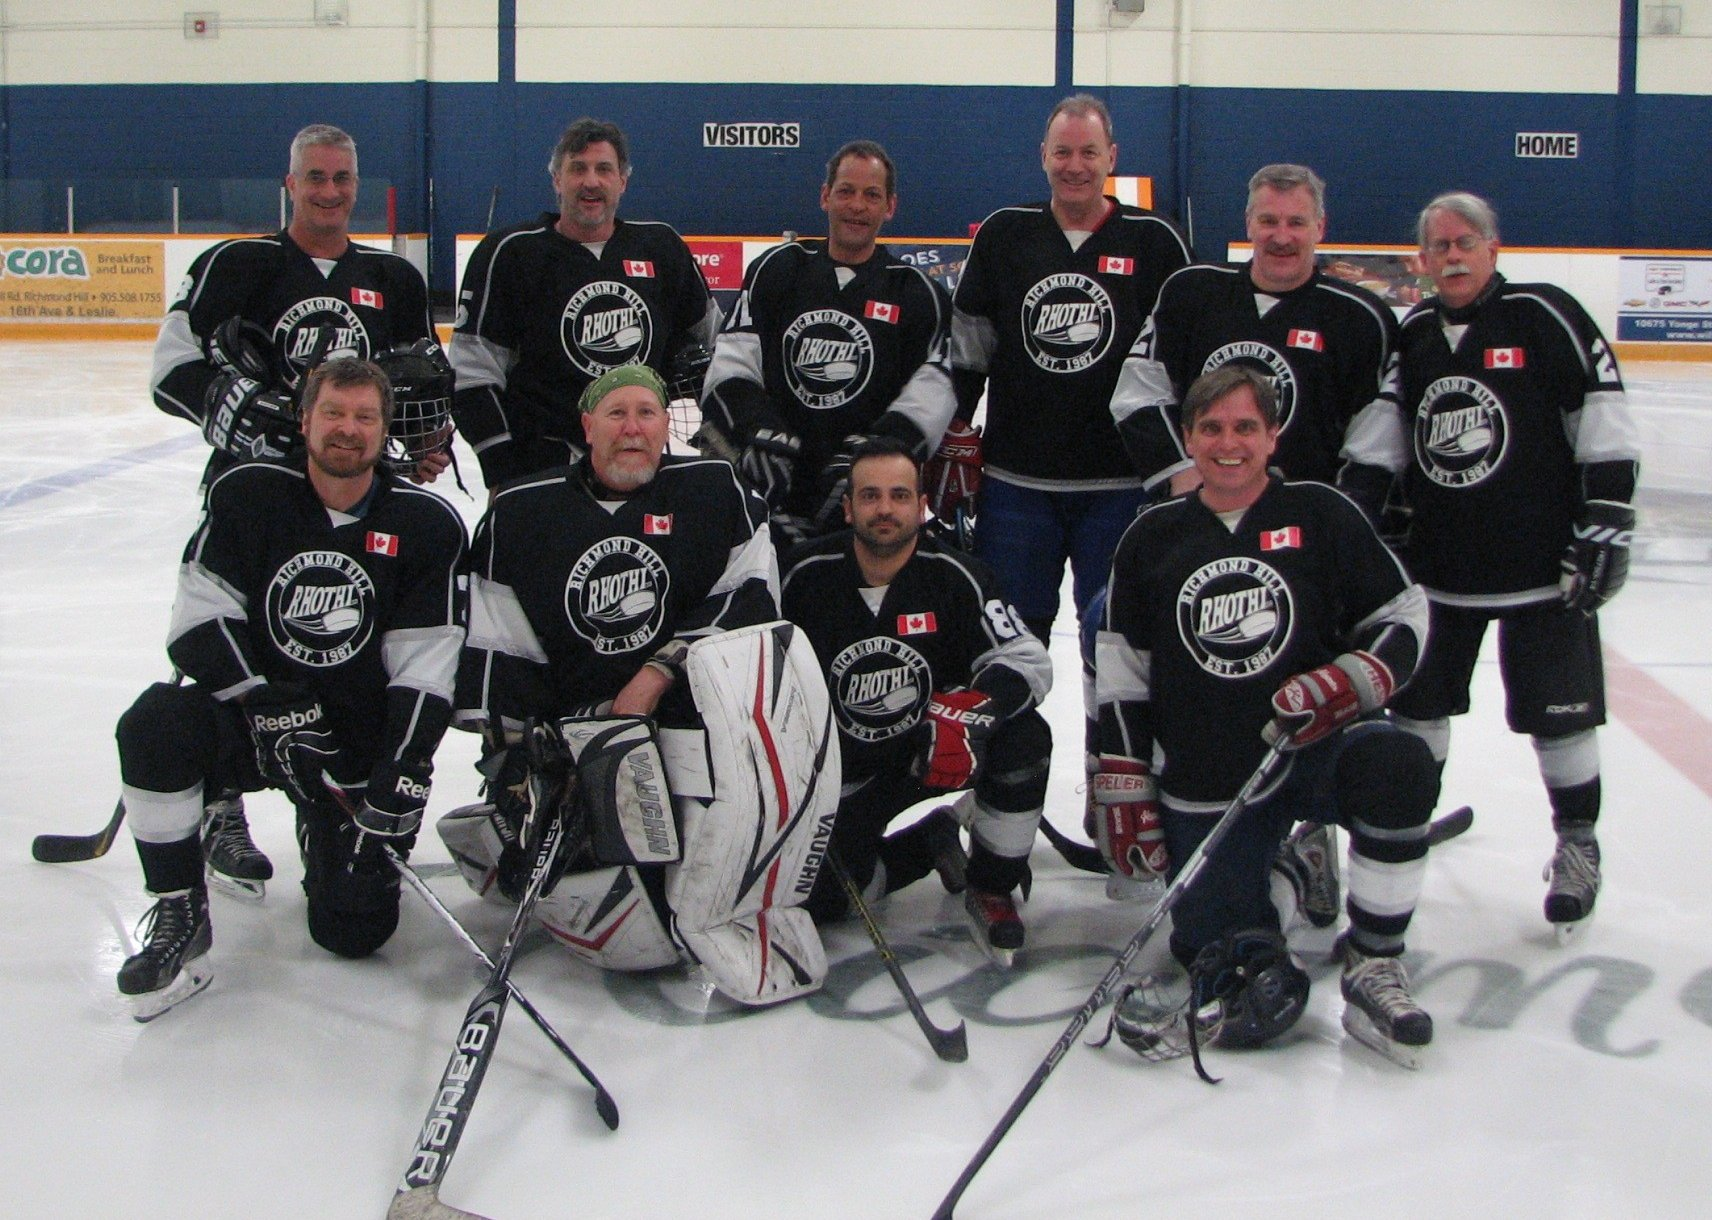 teams 2015 richmond hill old timers hockey league andy tsakas dave ezechials gerry fox tom peros larry greenberg front row l to r paul baillargeon doug arch michael tamin jacques therrien